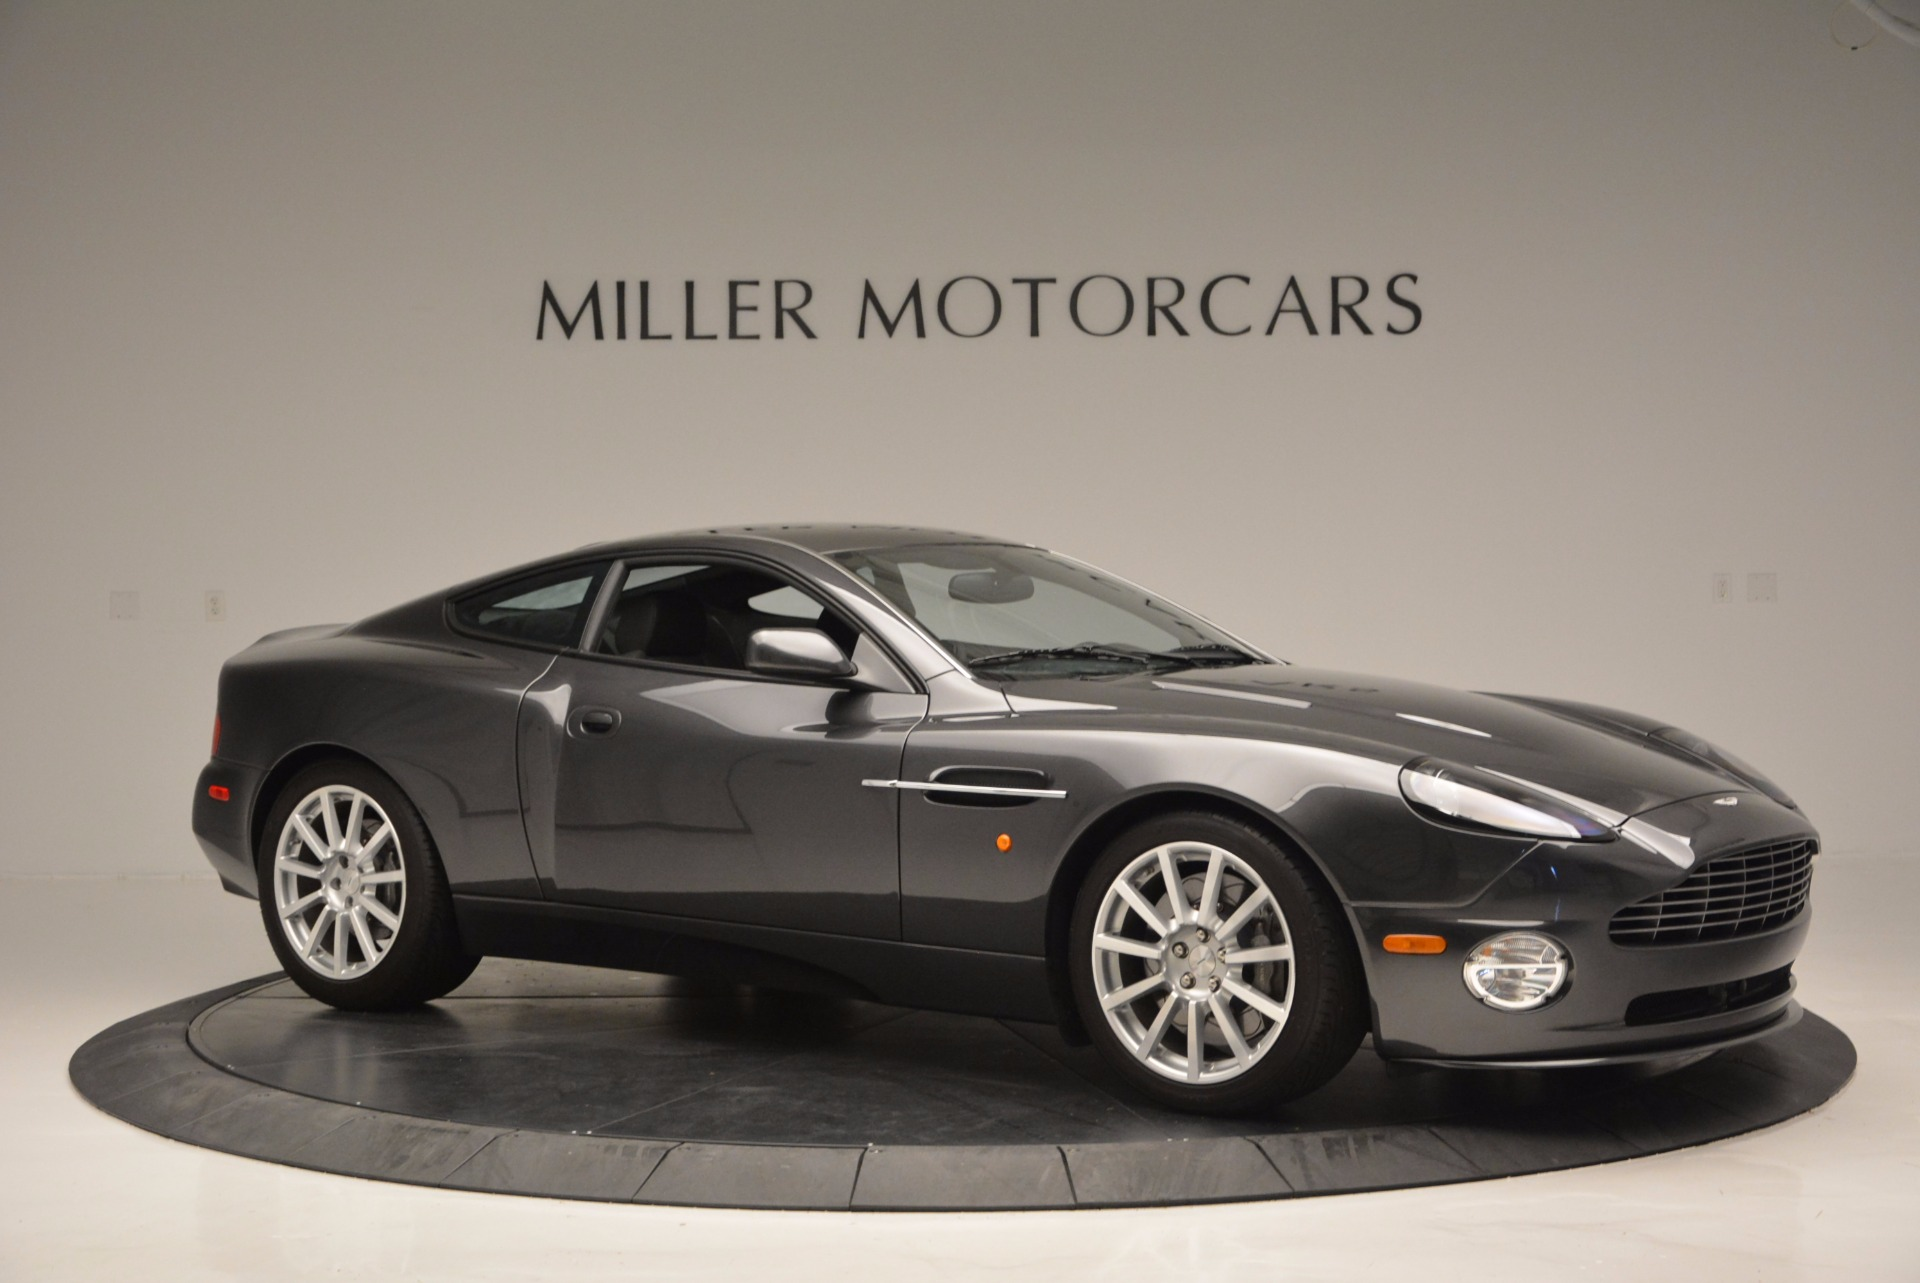 Used 2005 Aston Martin V12 Vanquish S For Sale In Greenwich, CT. Alfa Romeo of Greenwich, 7097 645_p10